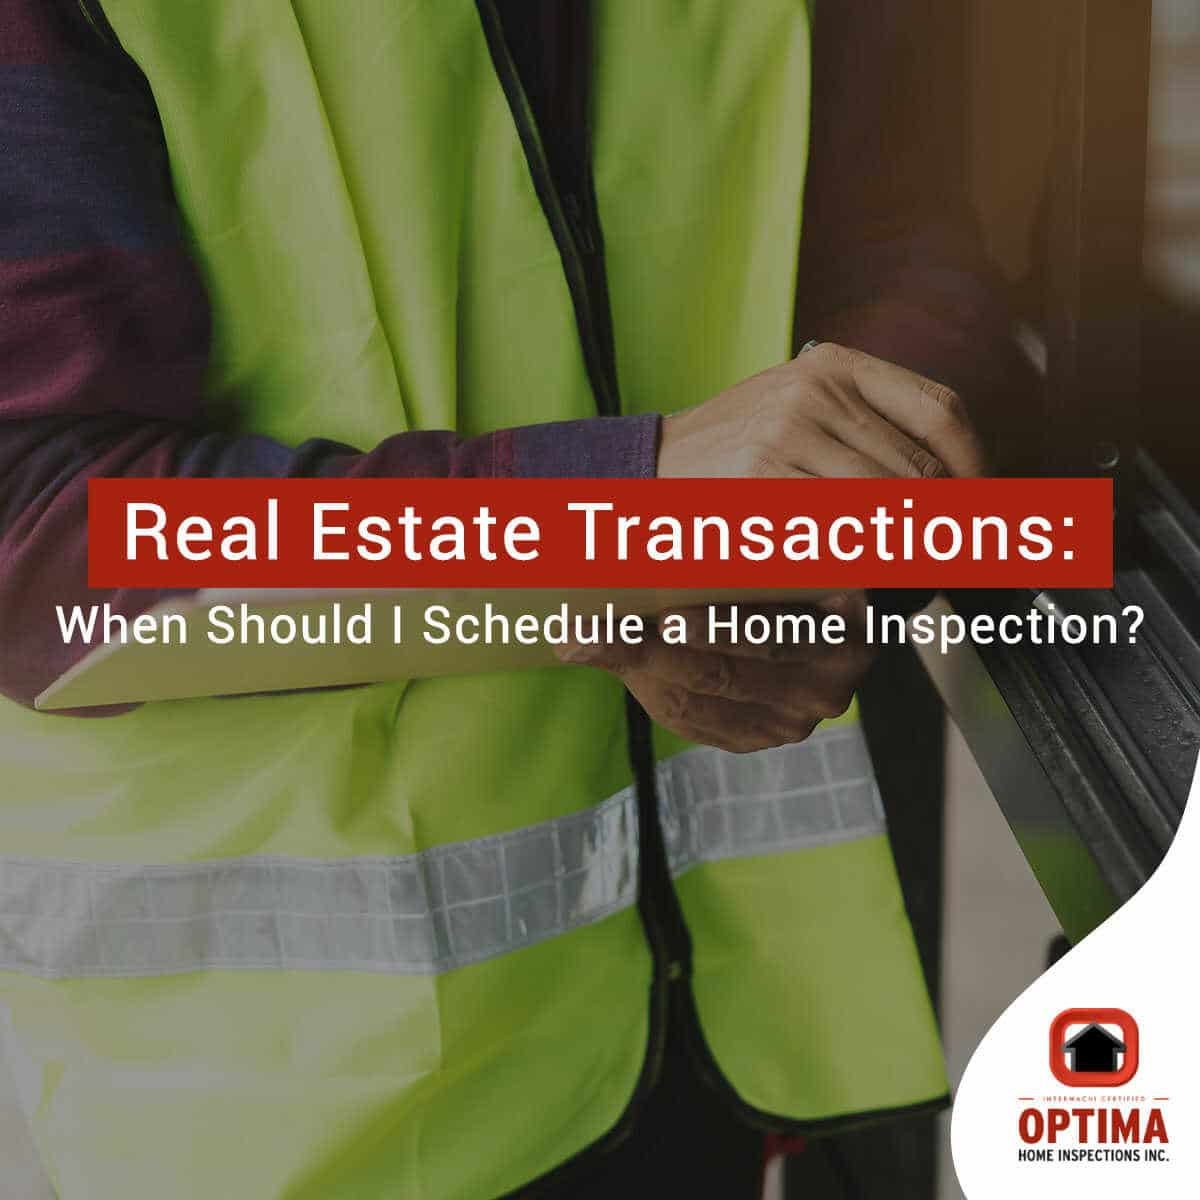 Real Estate Transactions: When Should I Schedule a Home Inspection?